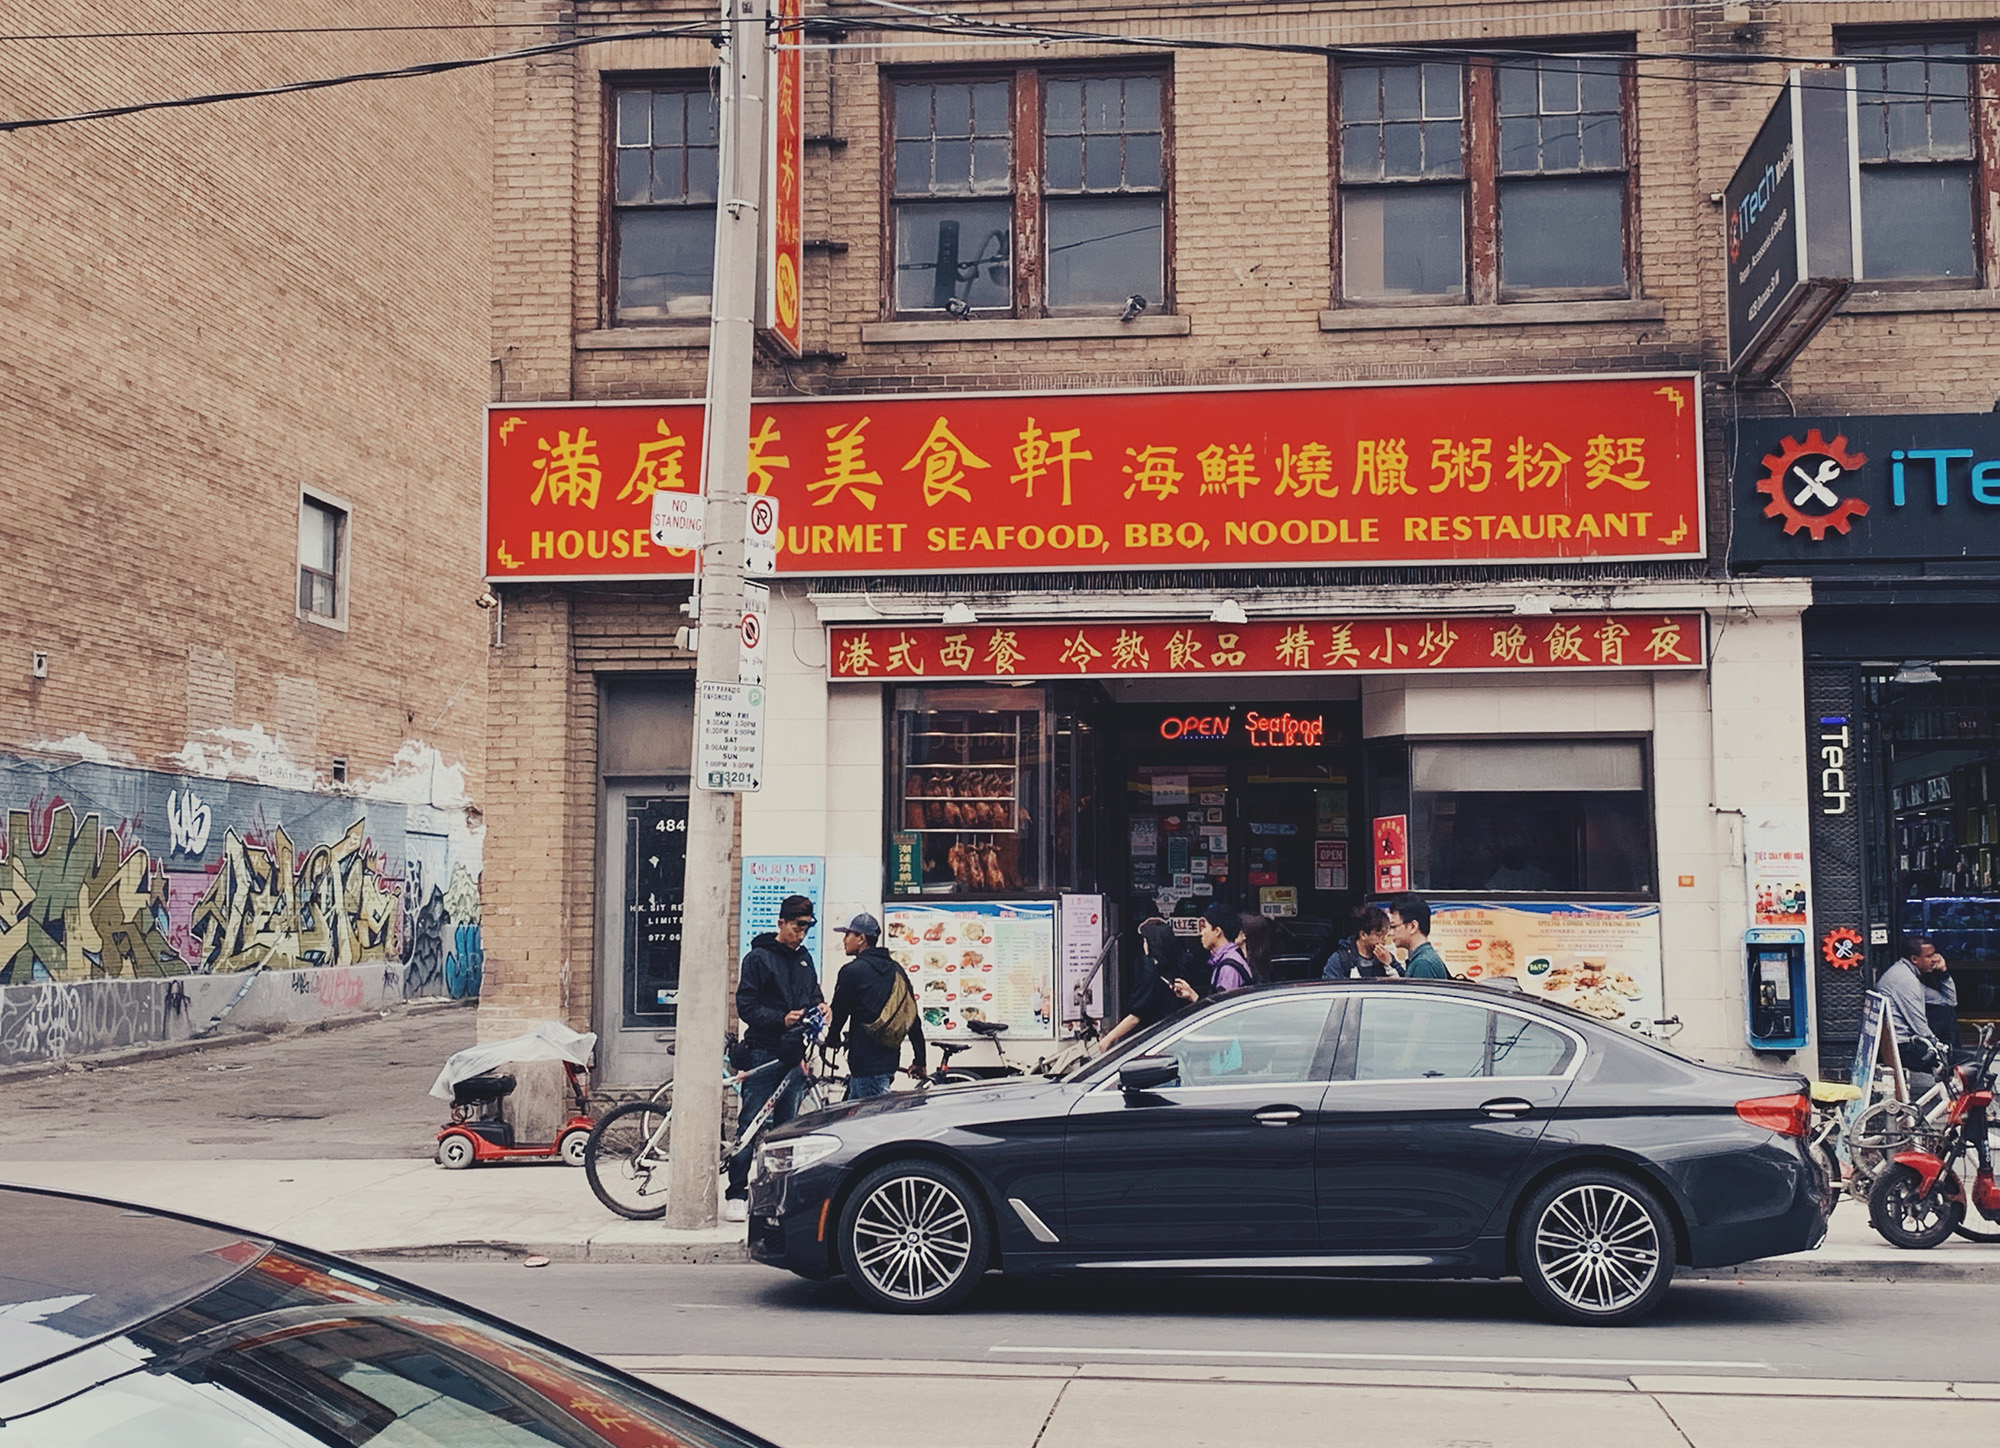 restaurants in Chinatown Toronto, House of Gourmet